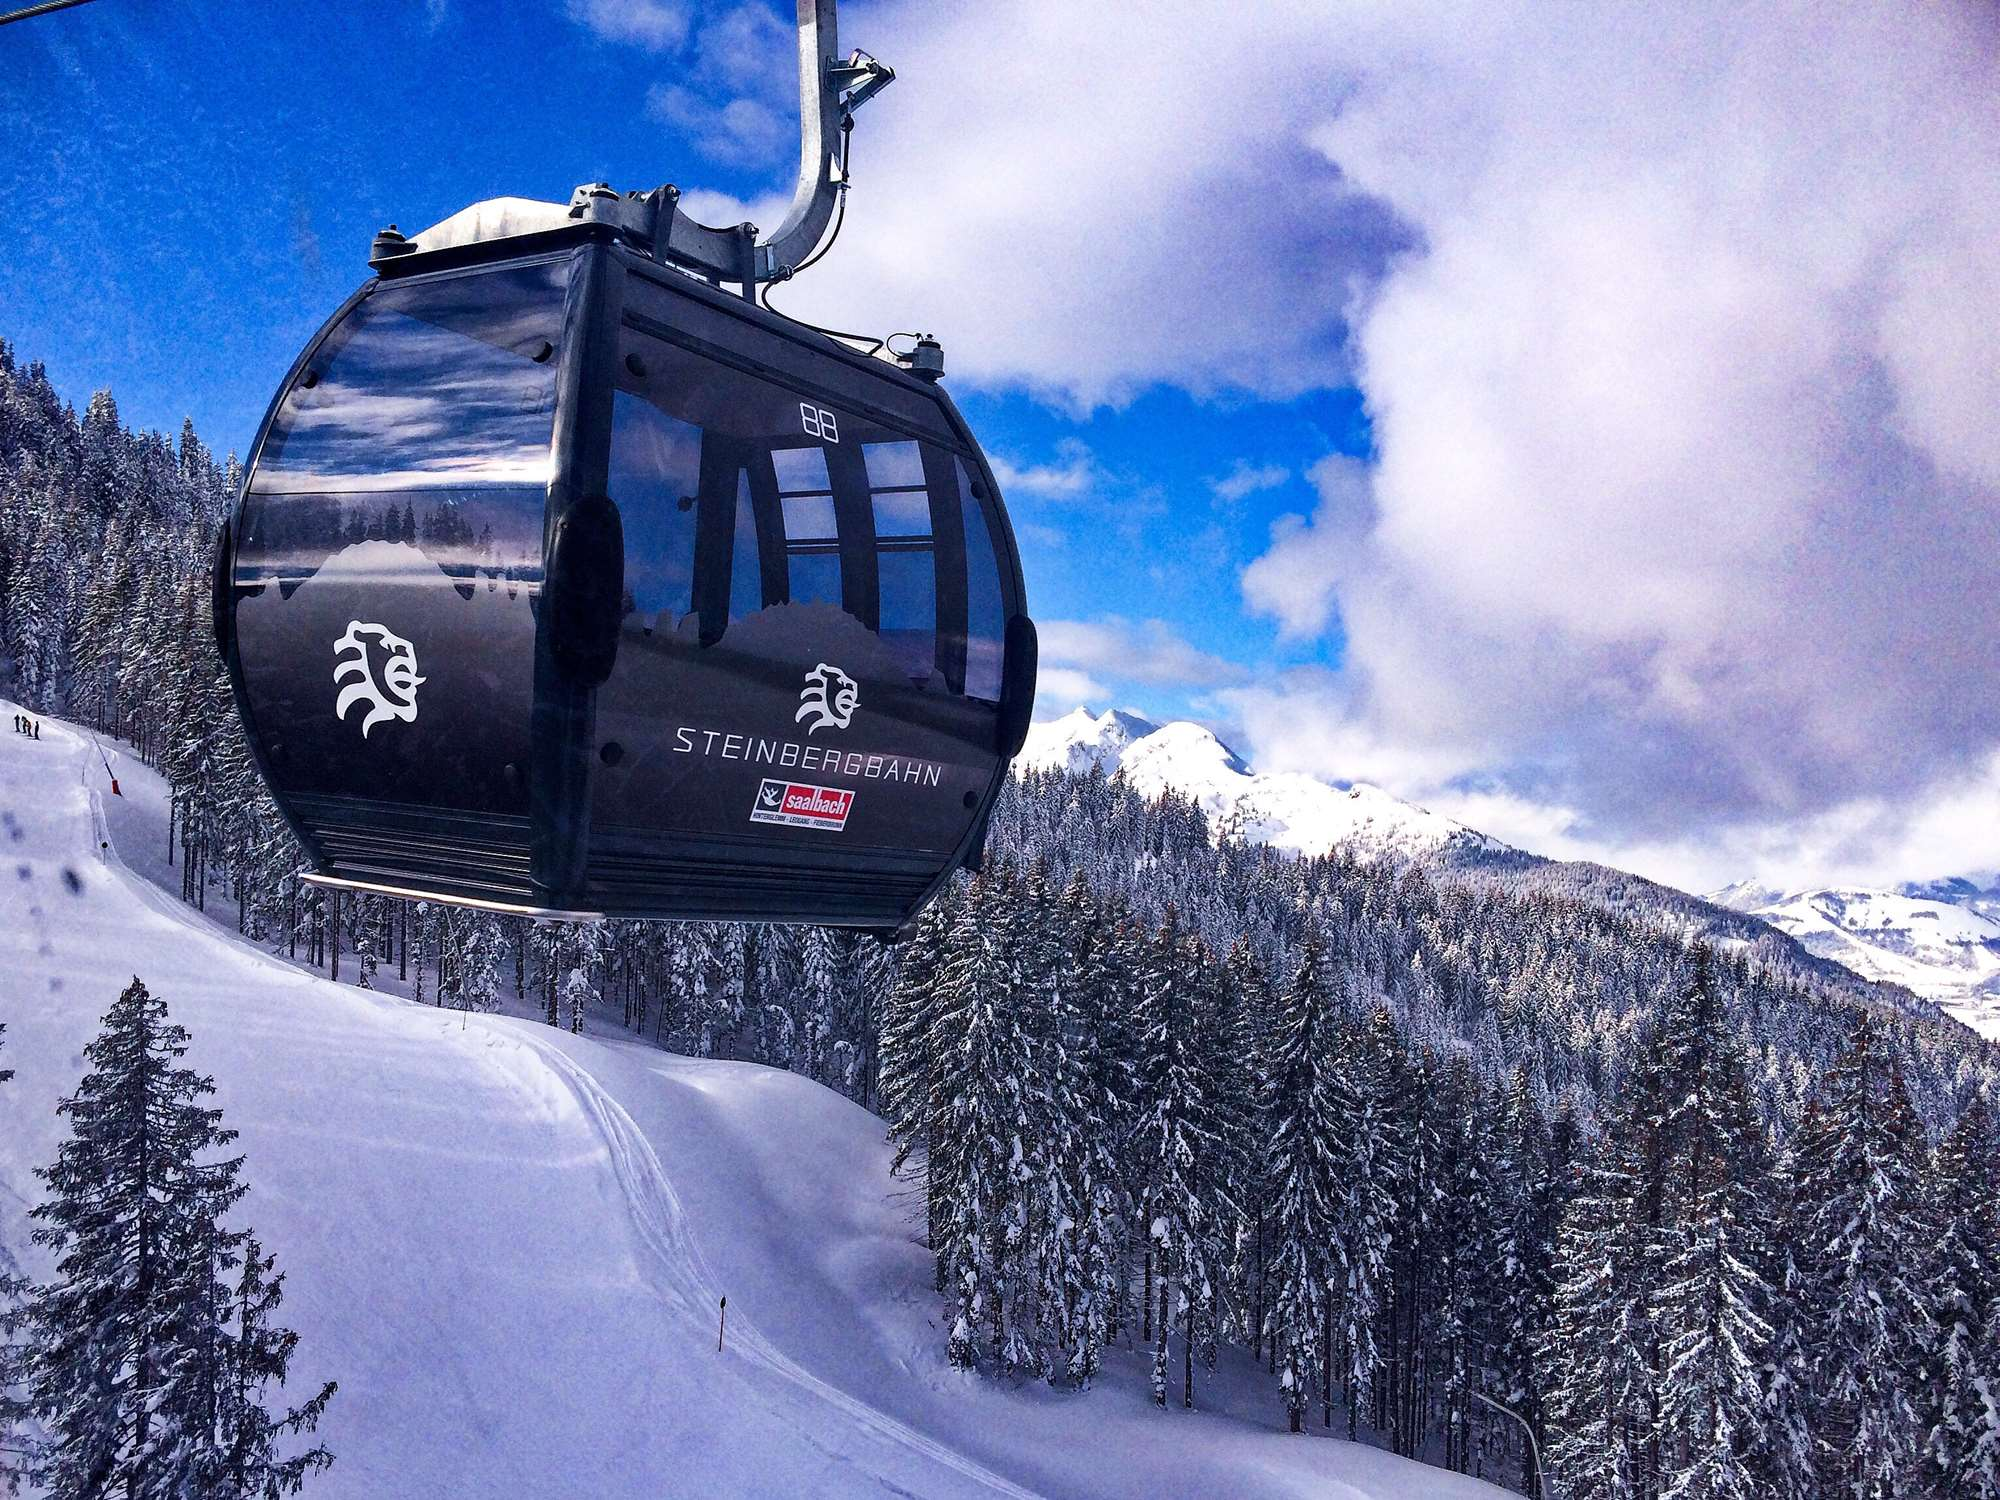 Gondola lift in Saalbach